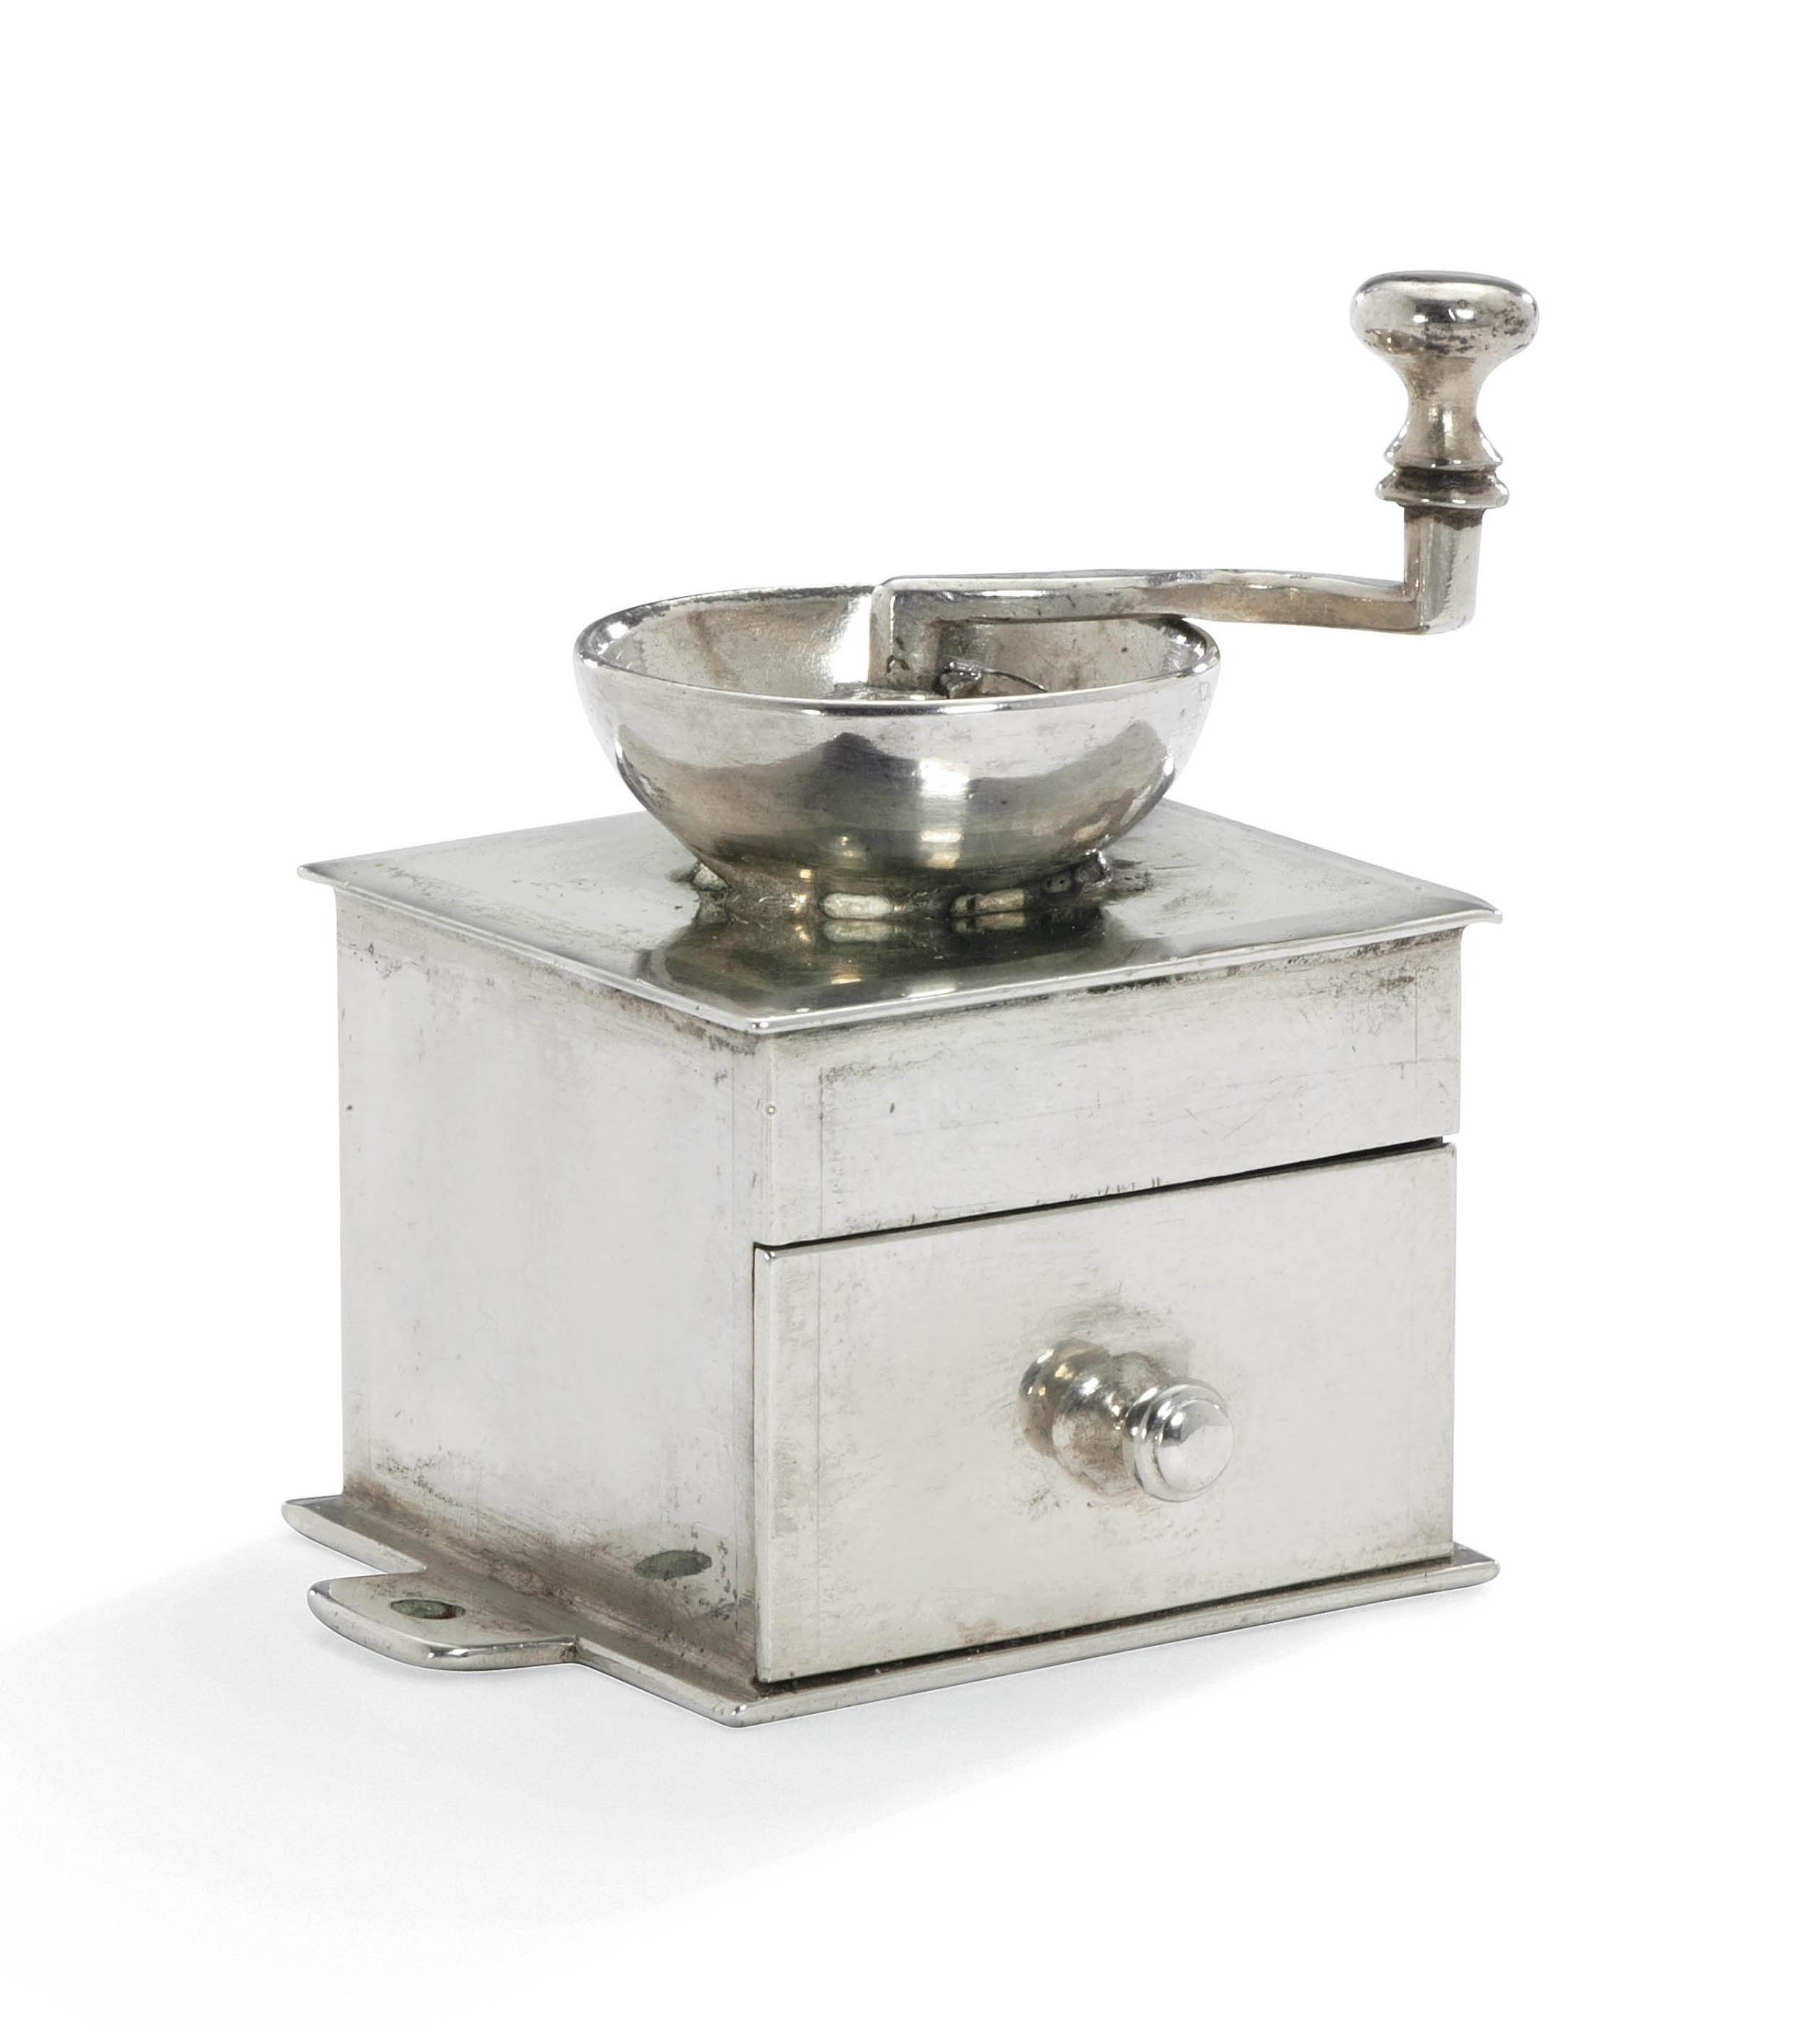 A DUTCH SILVER TOY MINIATURE COFFEE-GRINDER